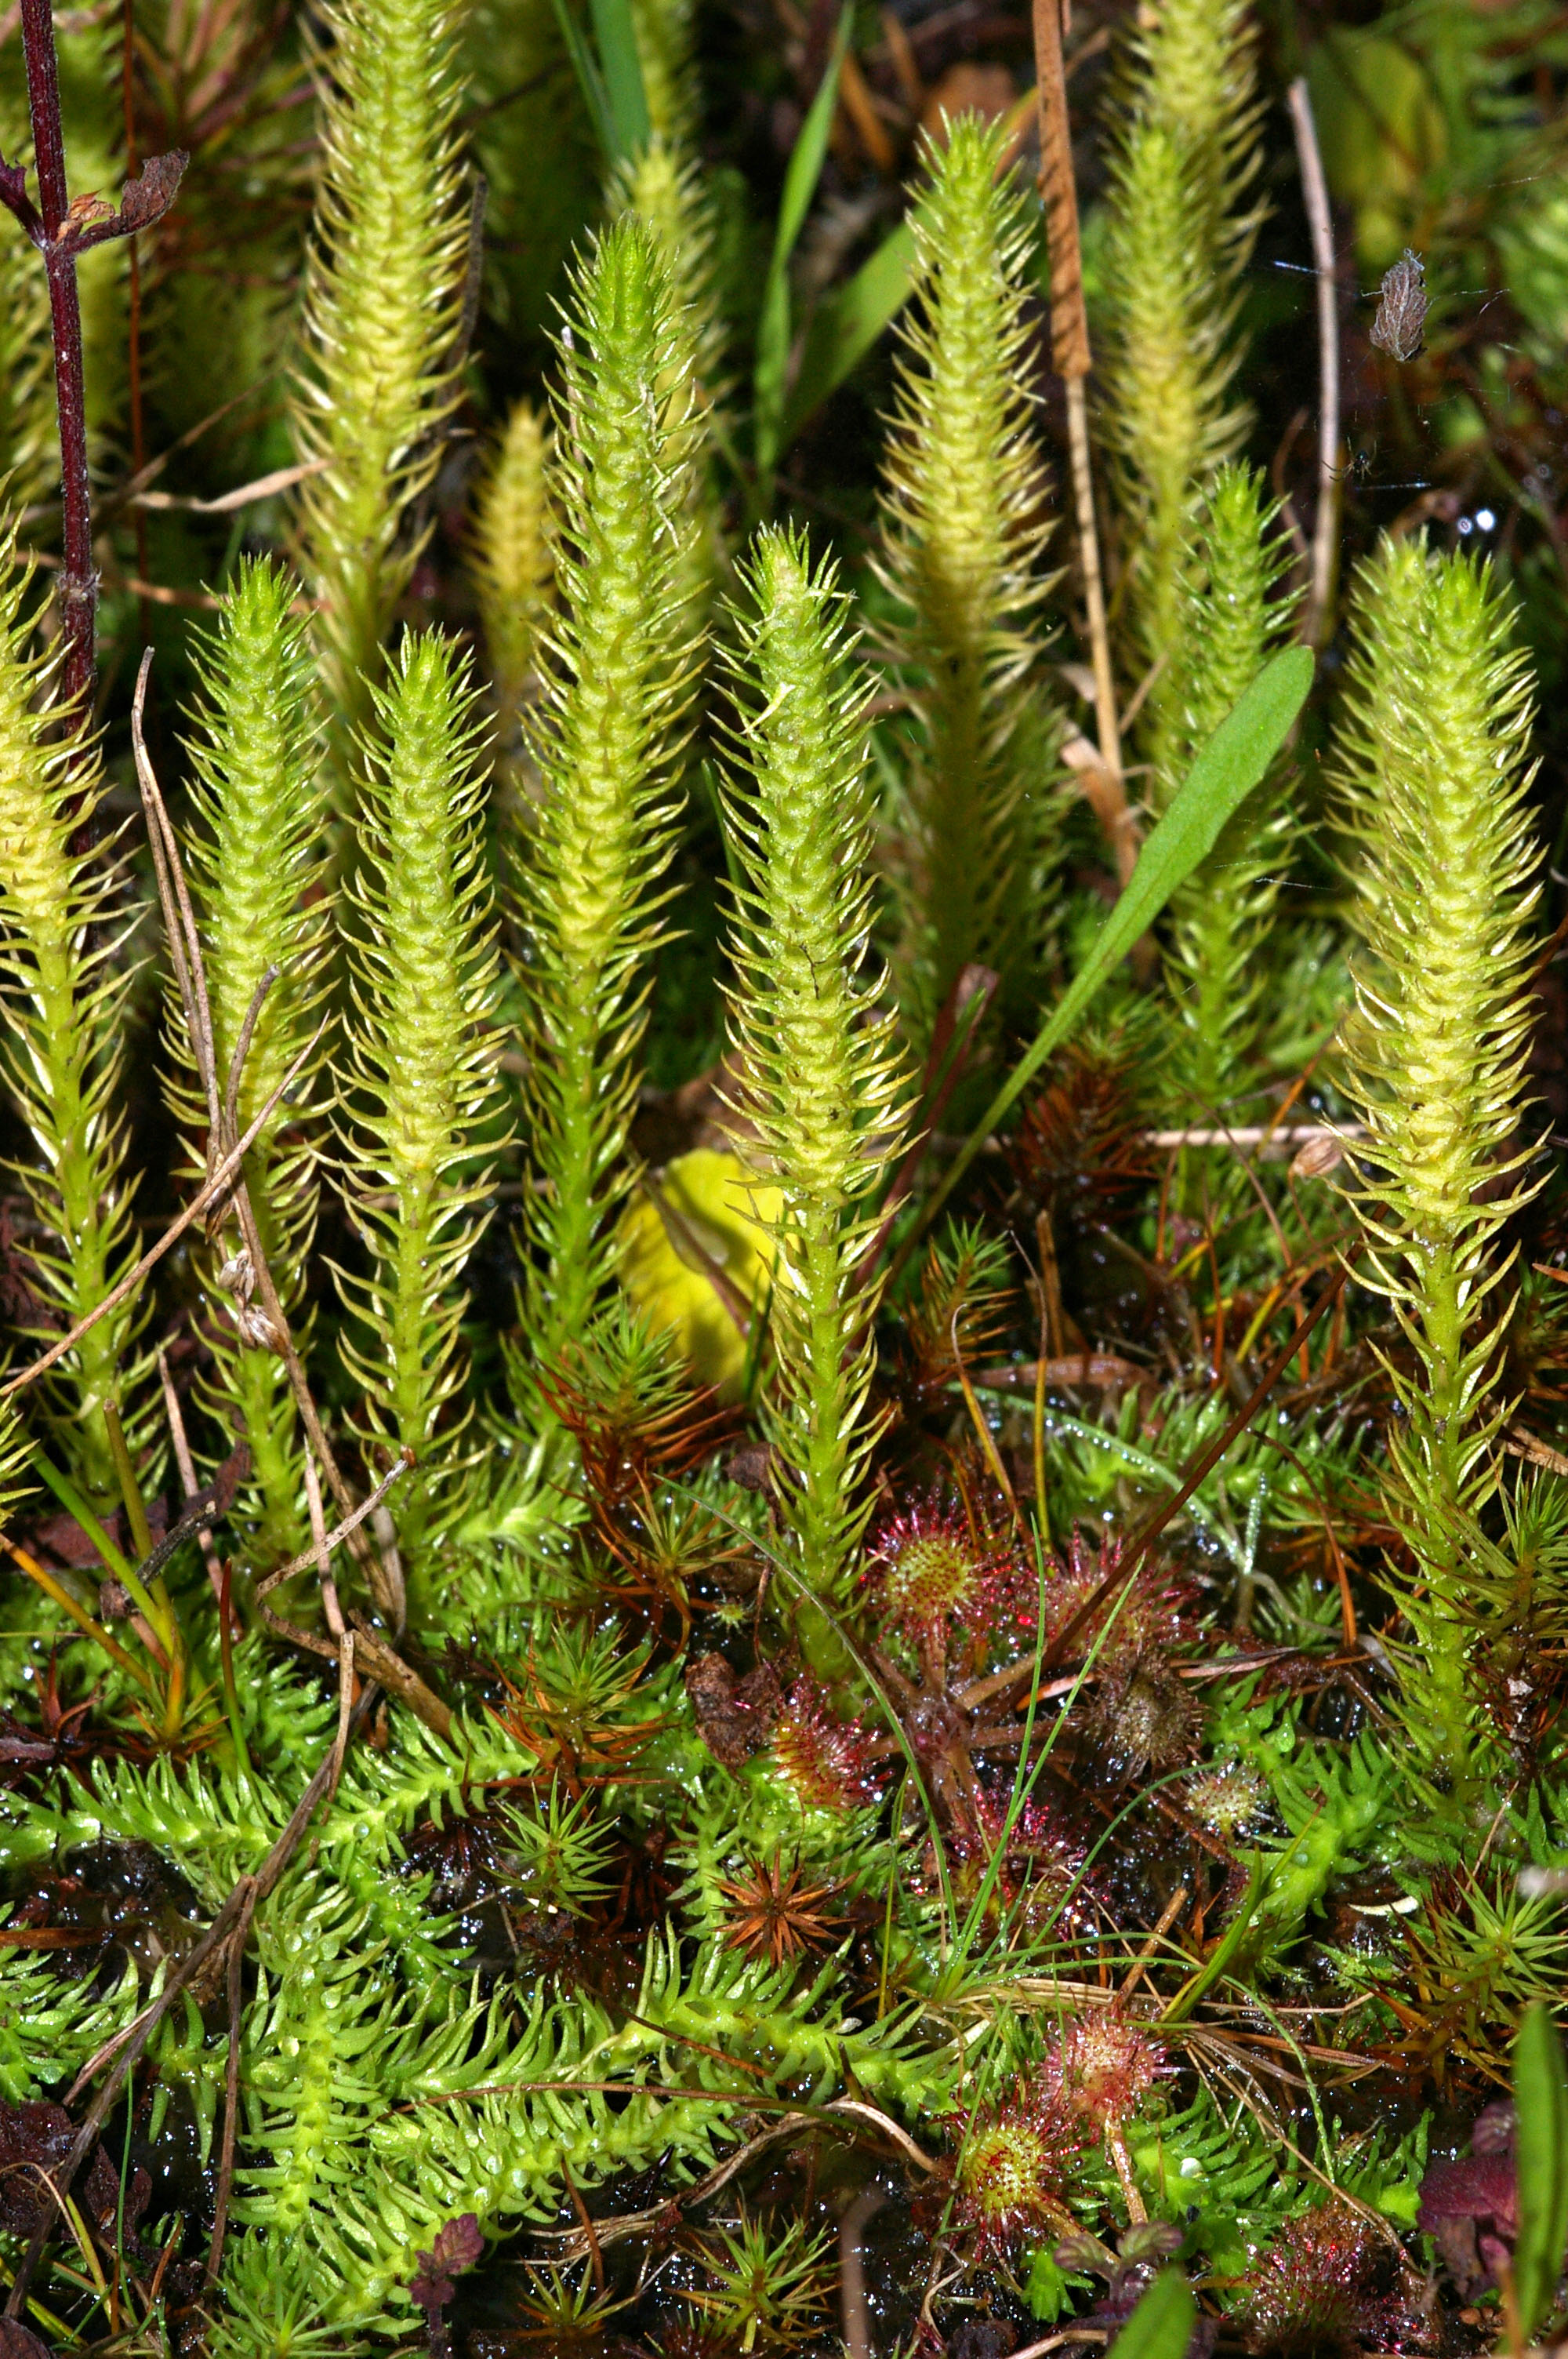 What kind of animals eat ferns?